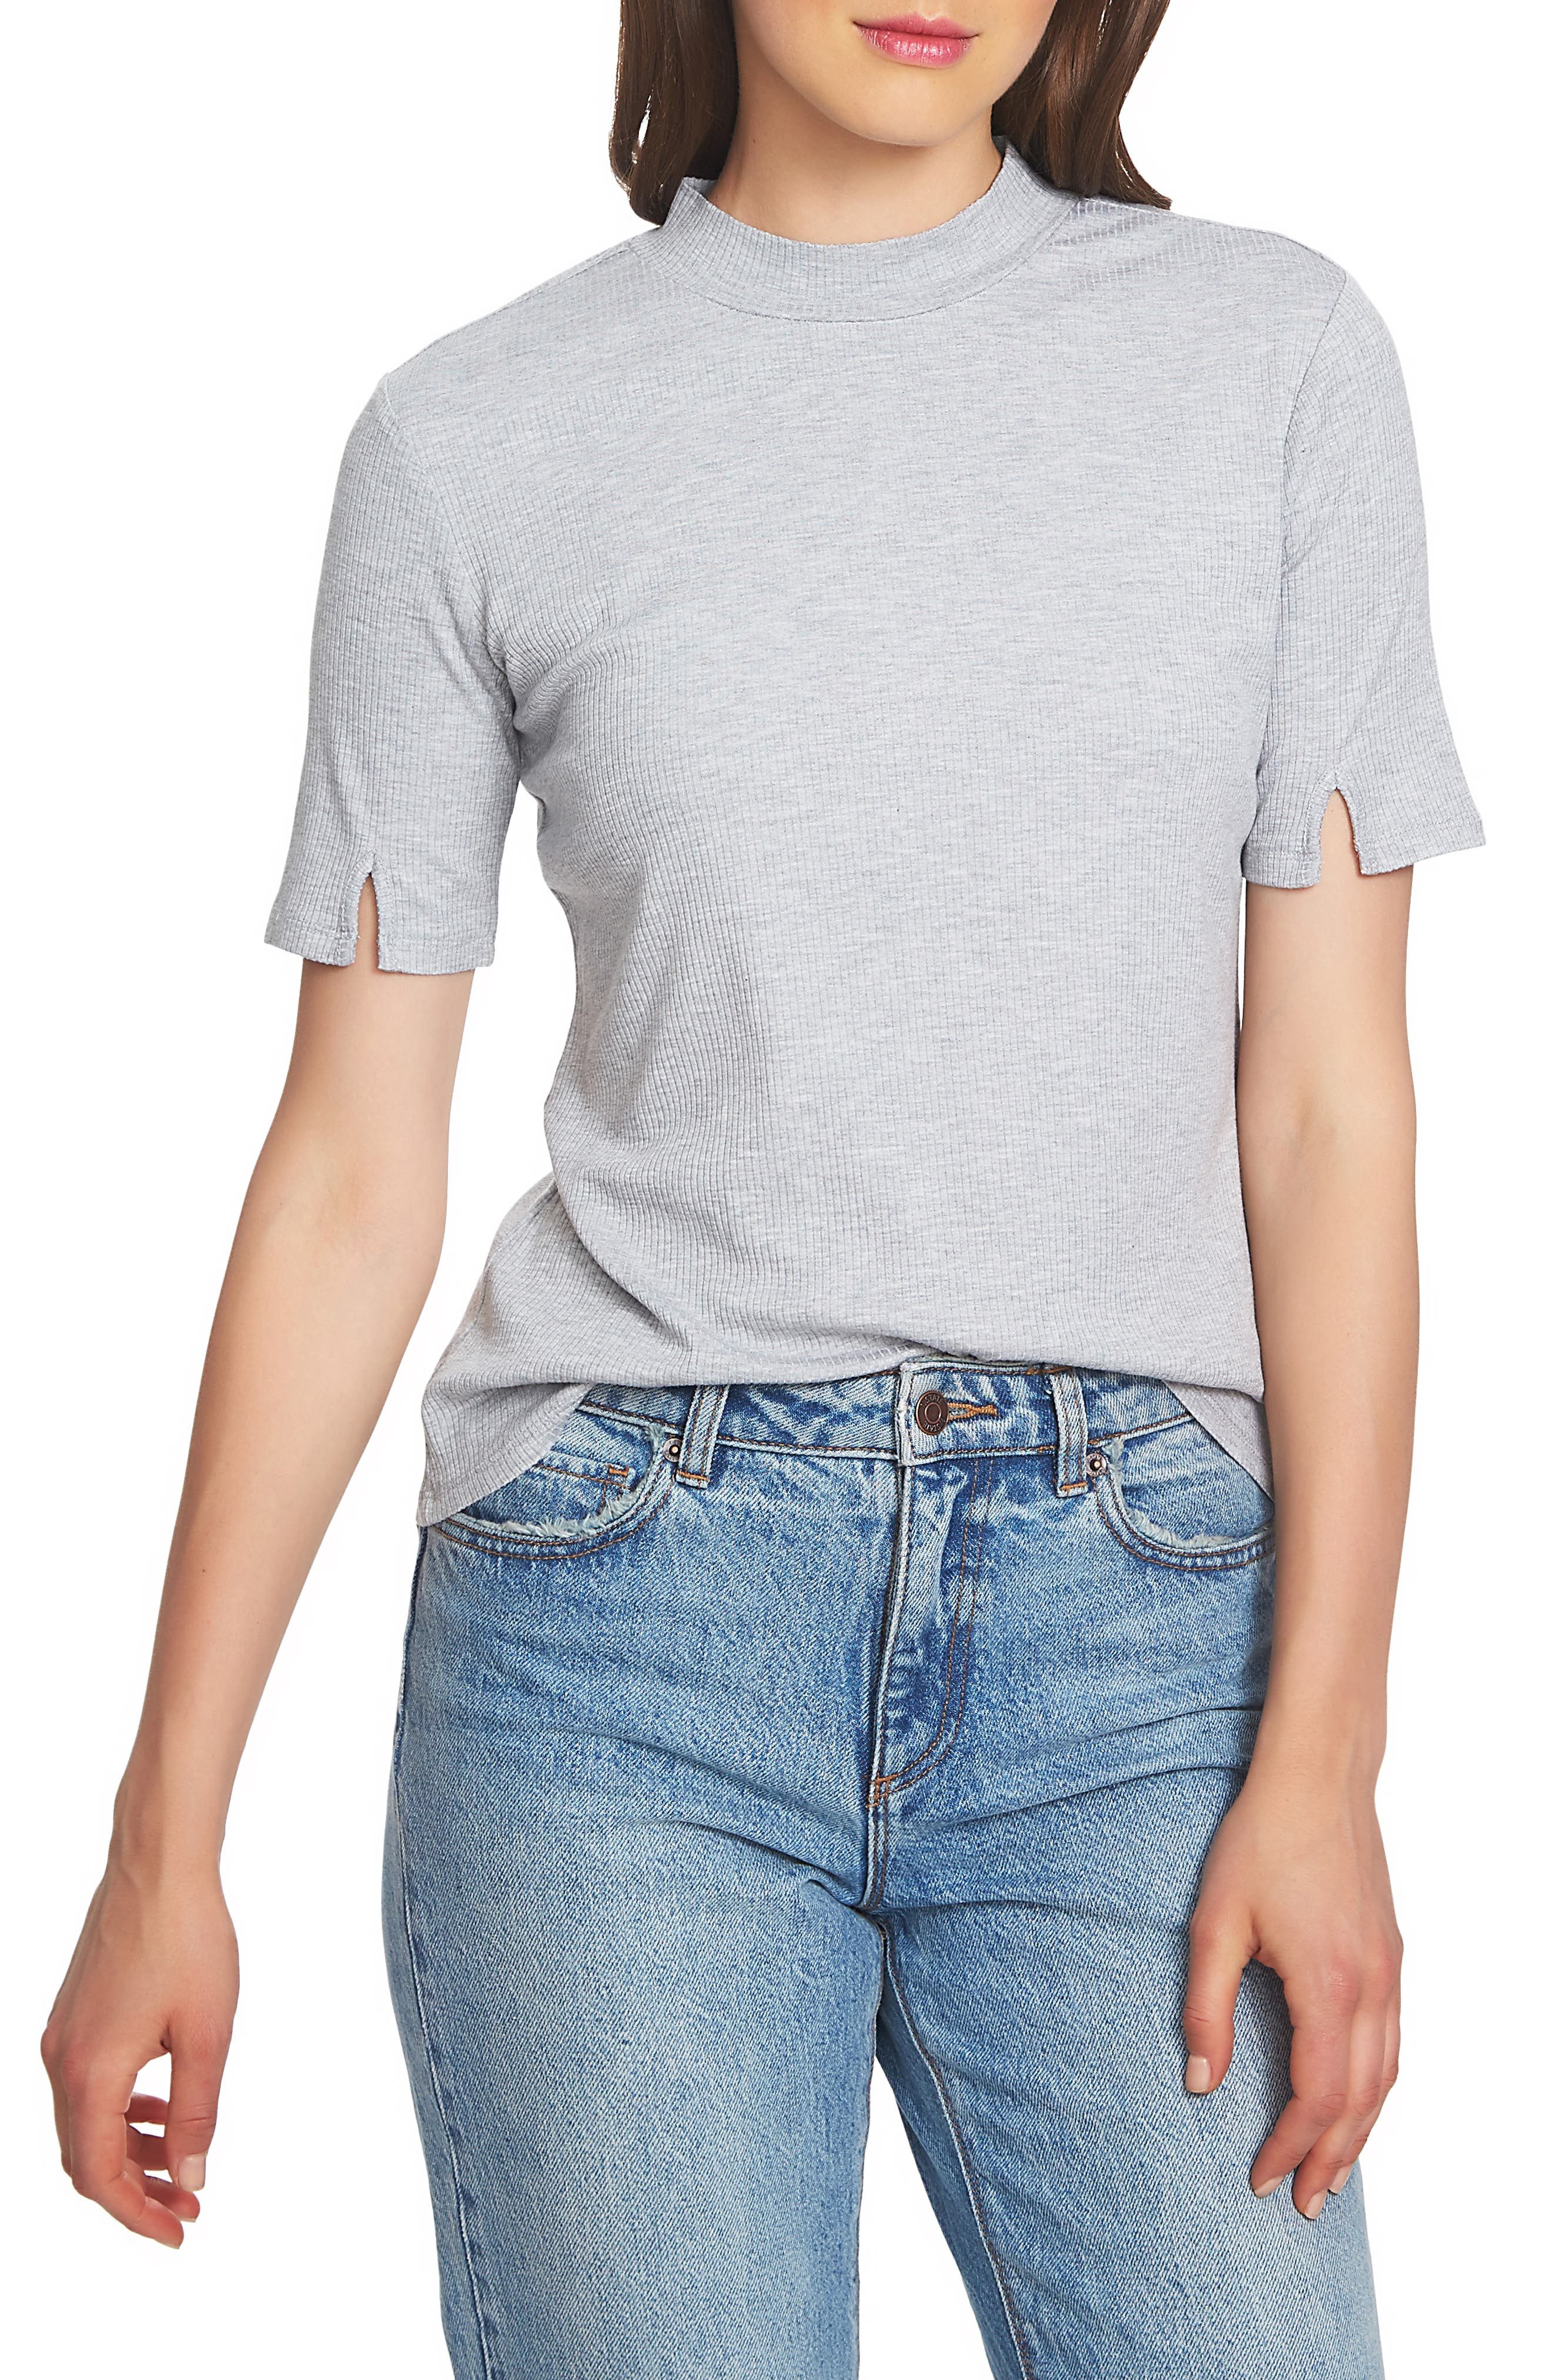 SLIT SLEEVE RIB KNIT TOP from Nordstrom